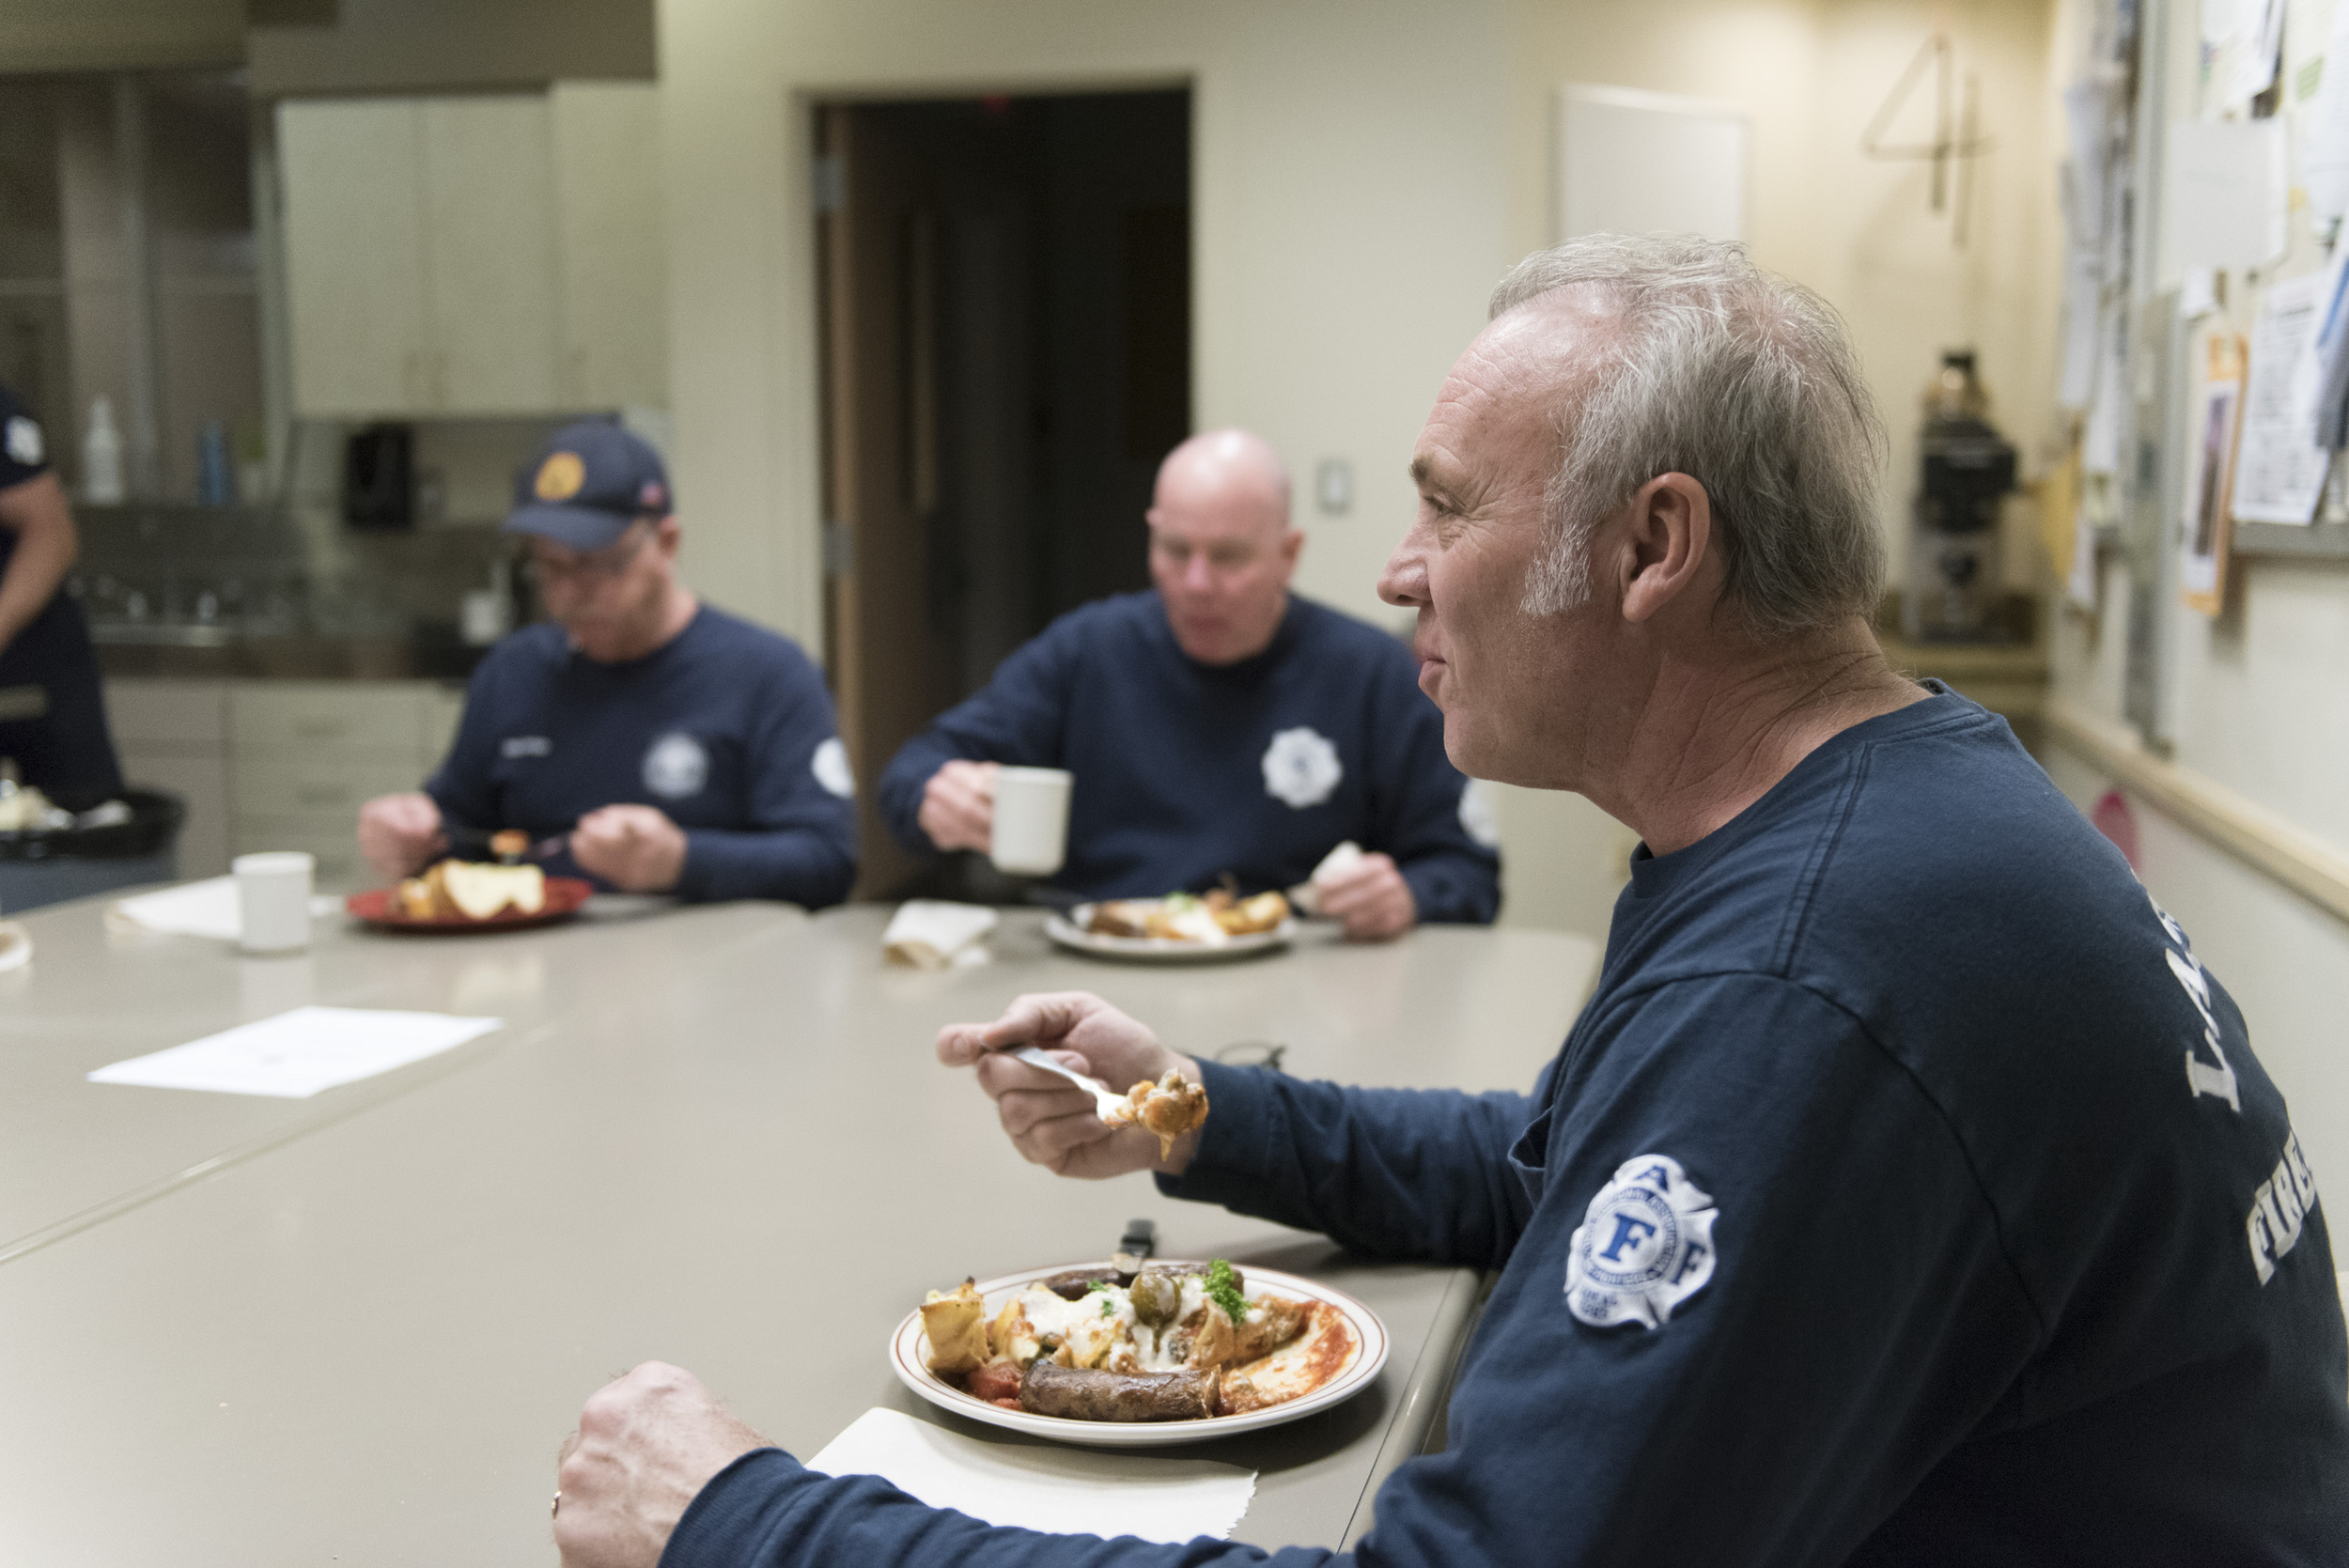 From right, Firefighter Ted Ramey, Firefighter Tom Thomas and Captain Mickey Pedrol eat dinner at Las Vegas Fire & Rescue's Fire Station 41 in Las Vegas Monday, Jan. 11, 2016. The dinner consists of Italian stuffed shells, grilled sausage, garlic bread, green salad and banana cream pie. Jason Ogulnik/Las Vegas Review-Journal